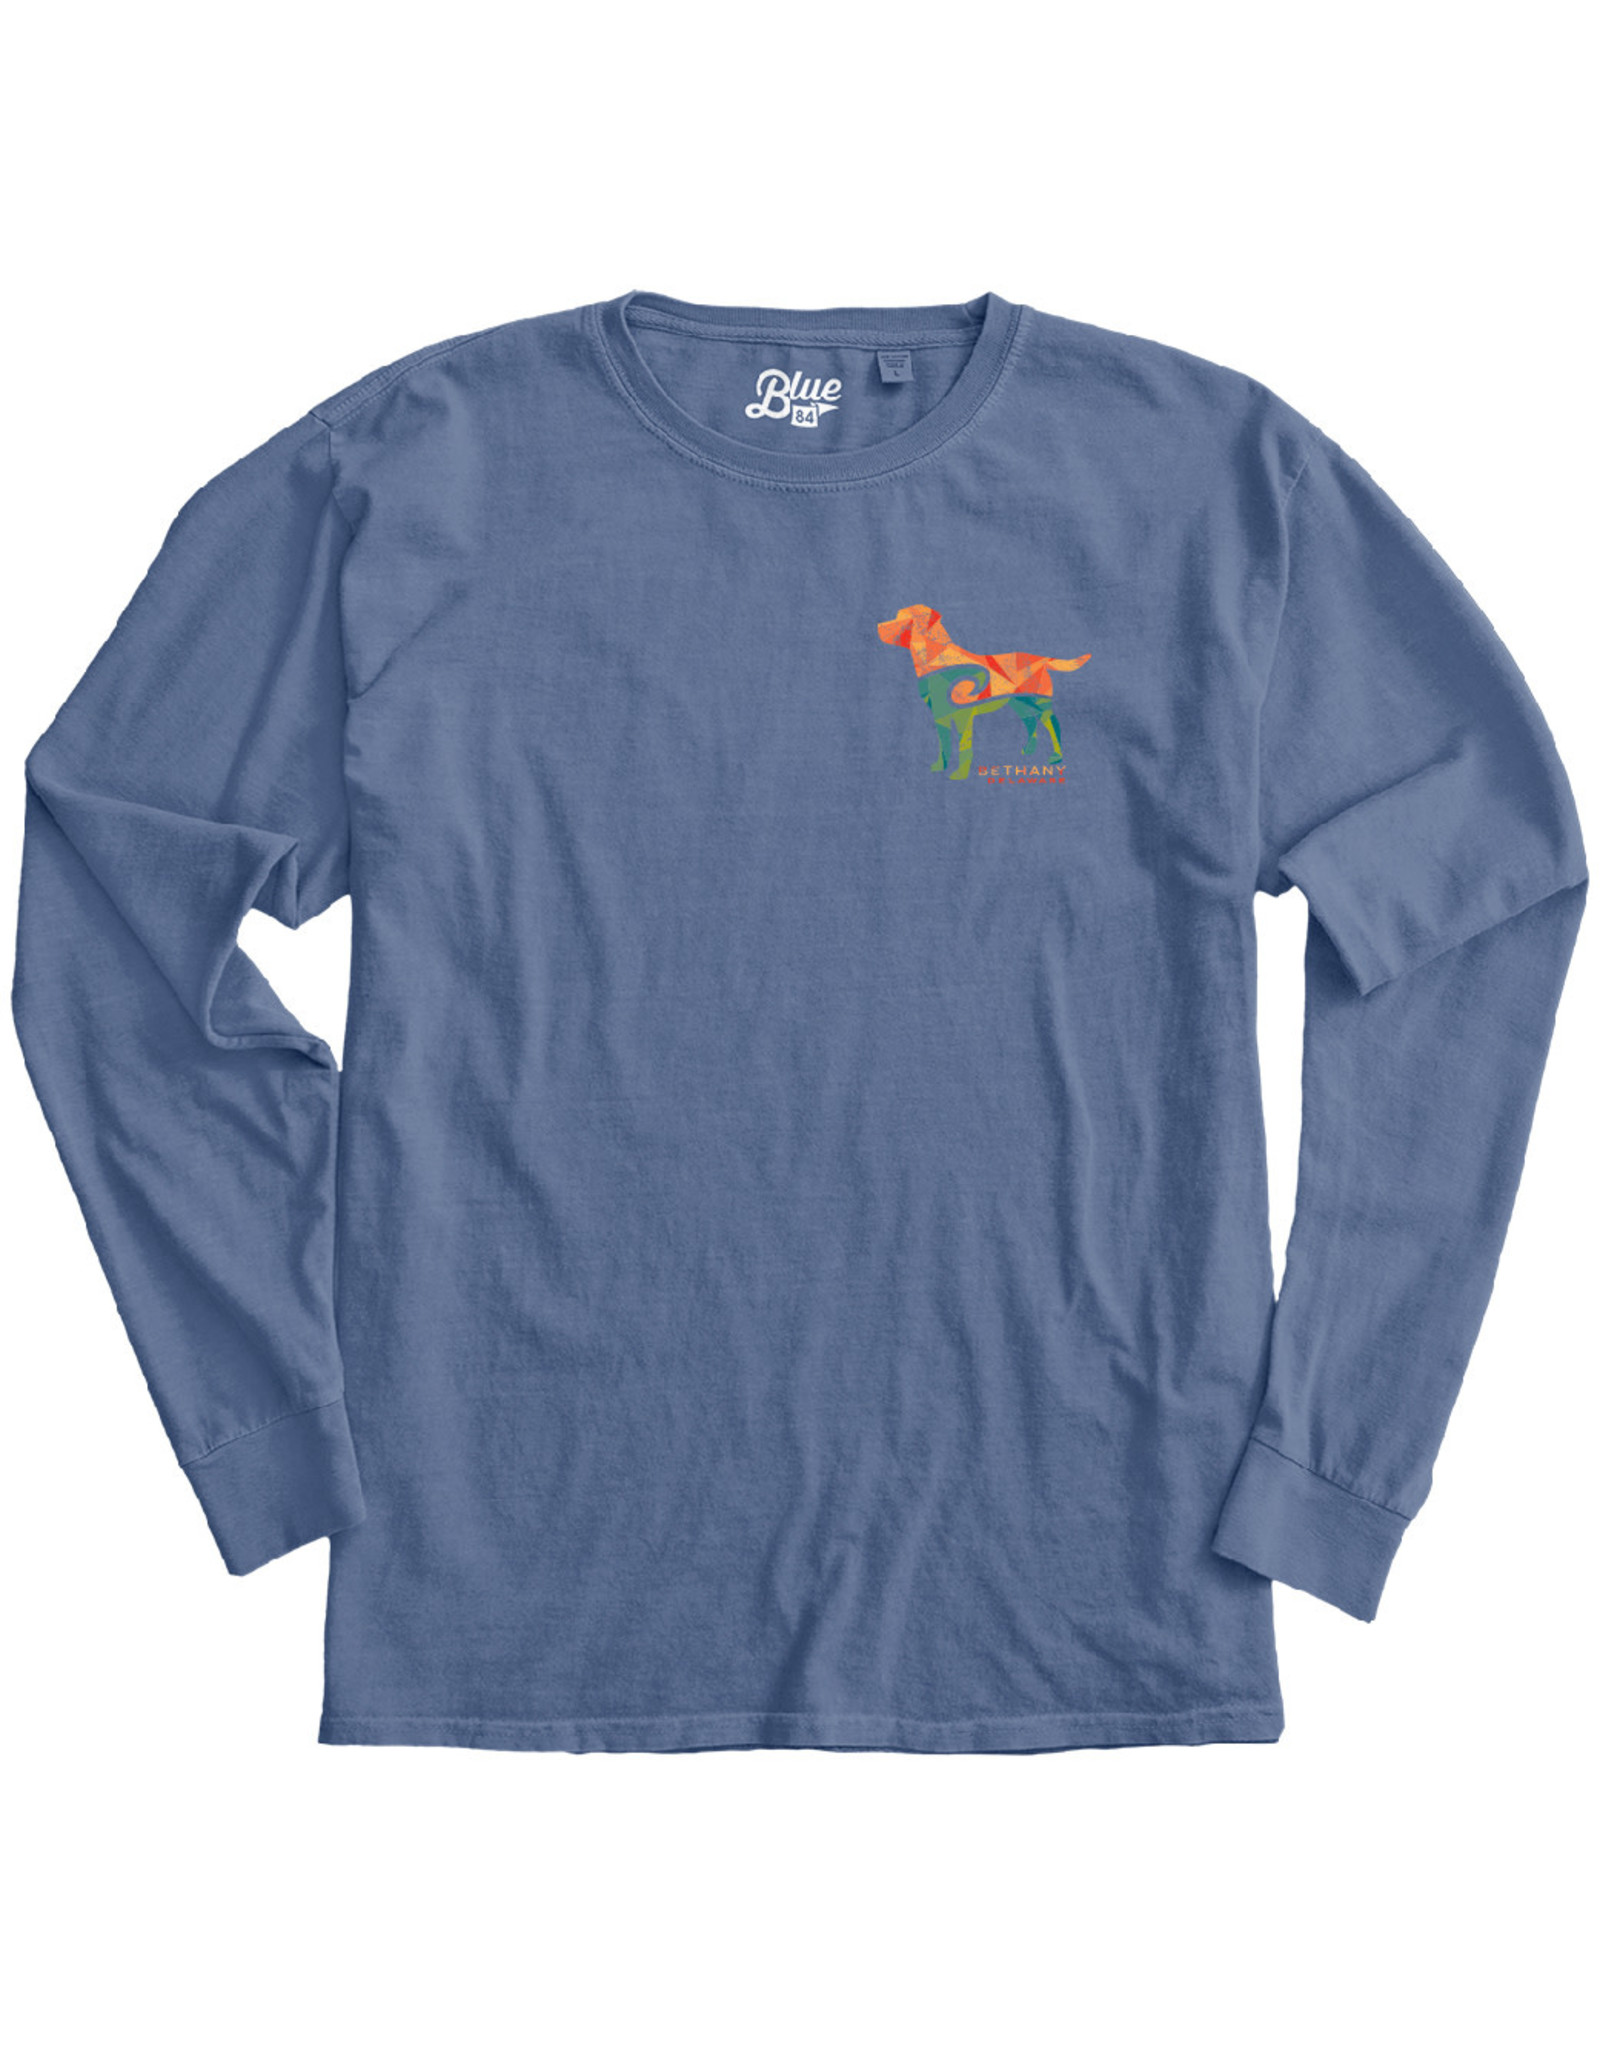 BLUE 84 BETHANY REMNANT LAB LS TEE